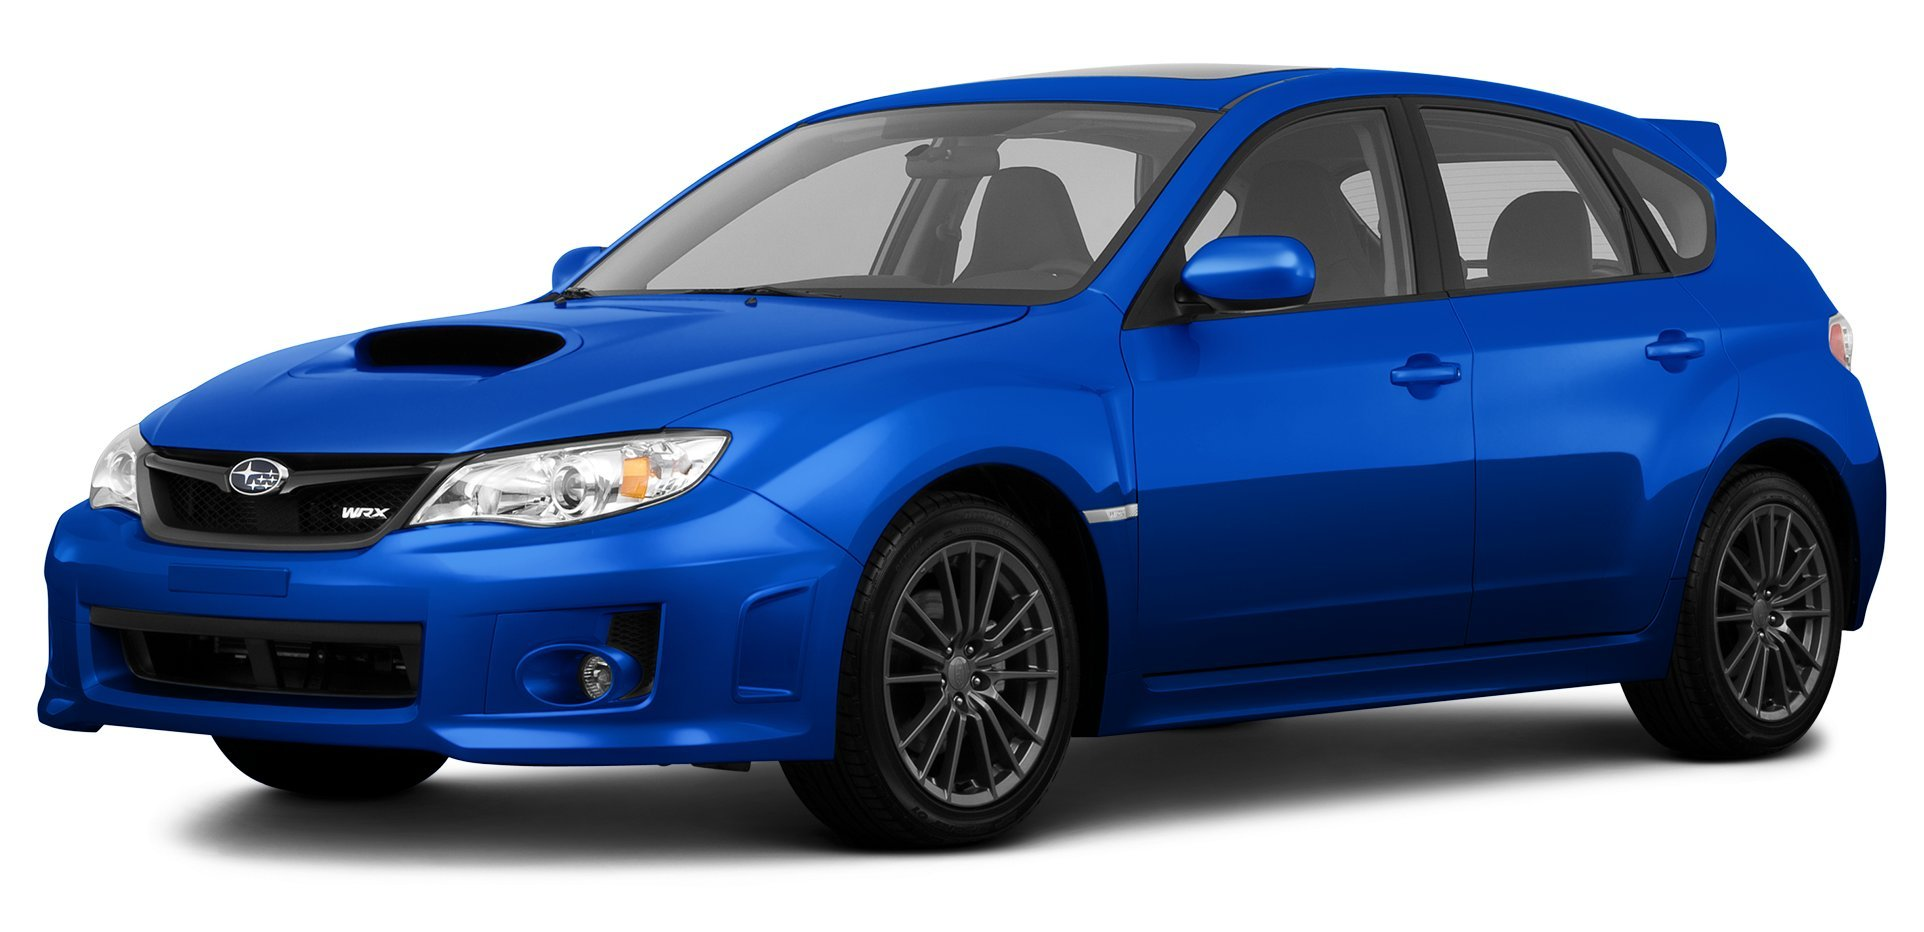 2013 Wrx Sti >> 2013 Subaru Impreza Wrx Sti 5 Door Manual Transmission Wr Blue Pearl